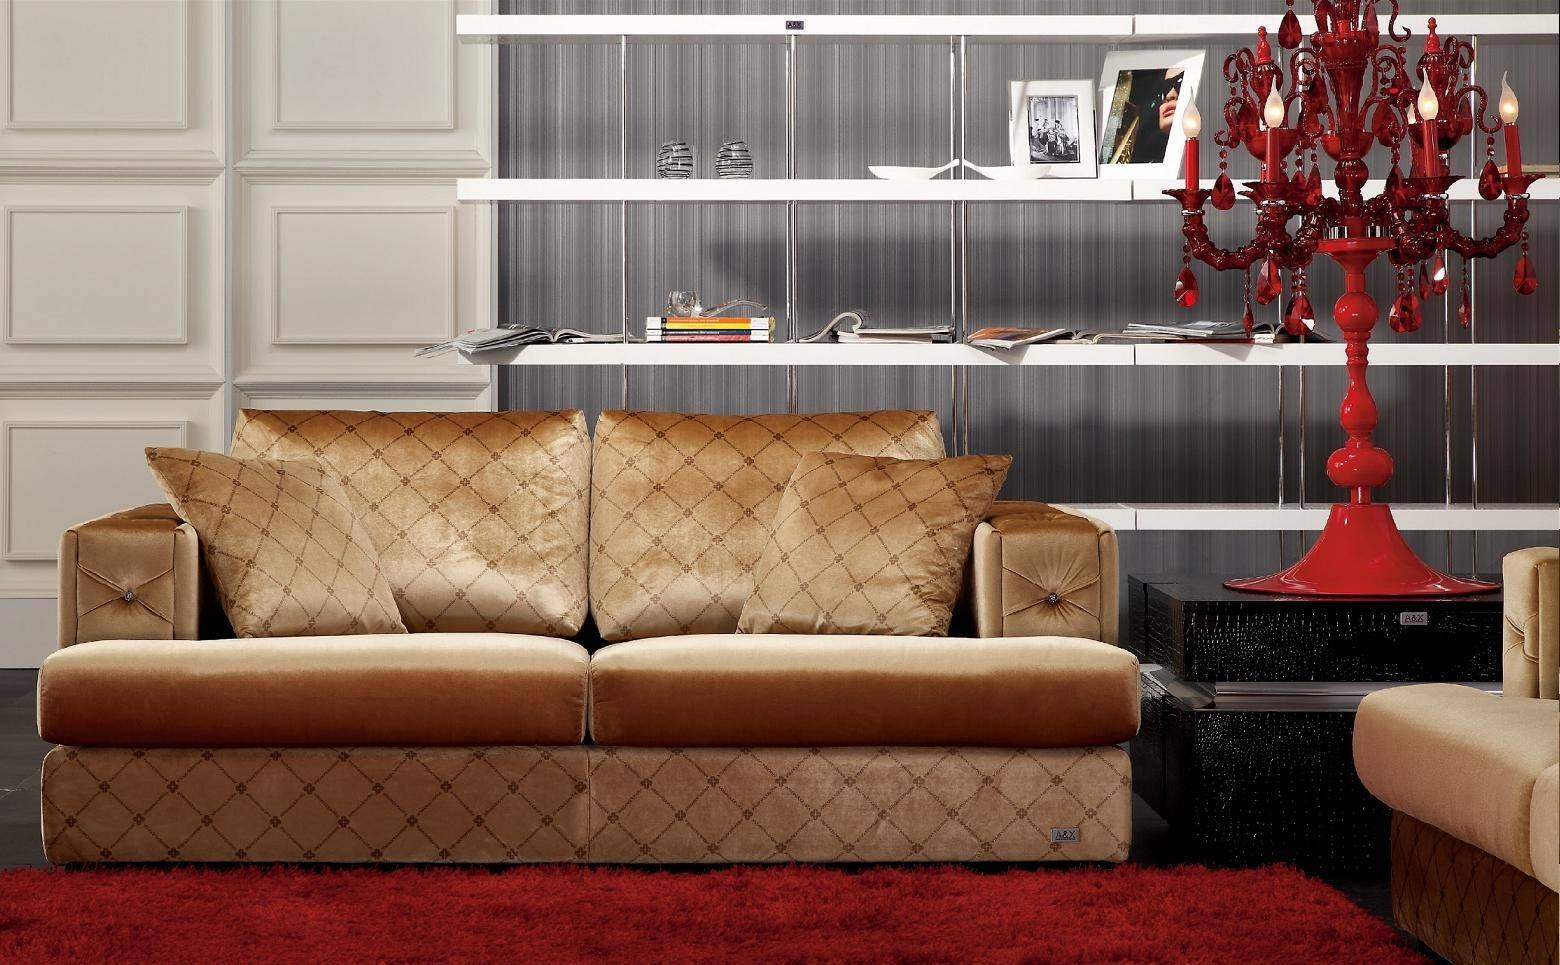 Unique Velvet Sofa Set 39 On Modern Sofa Inspiration With Velvet inside Brown Velvet Sofas (Image 14 of 15)